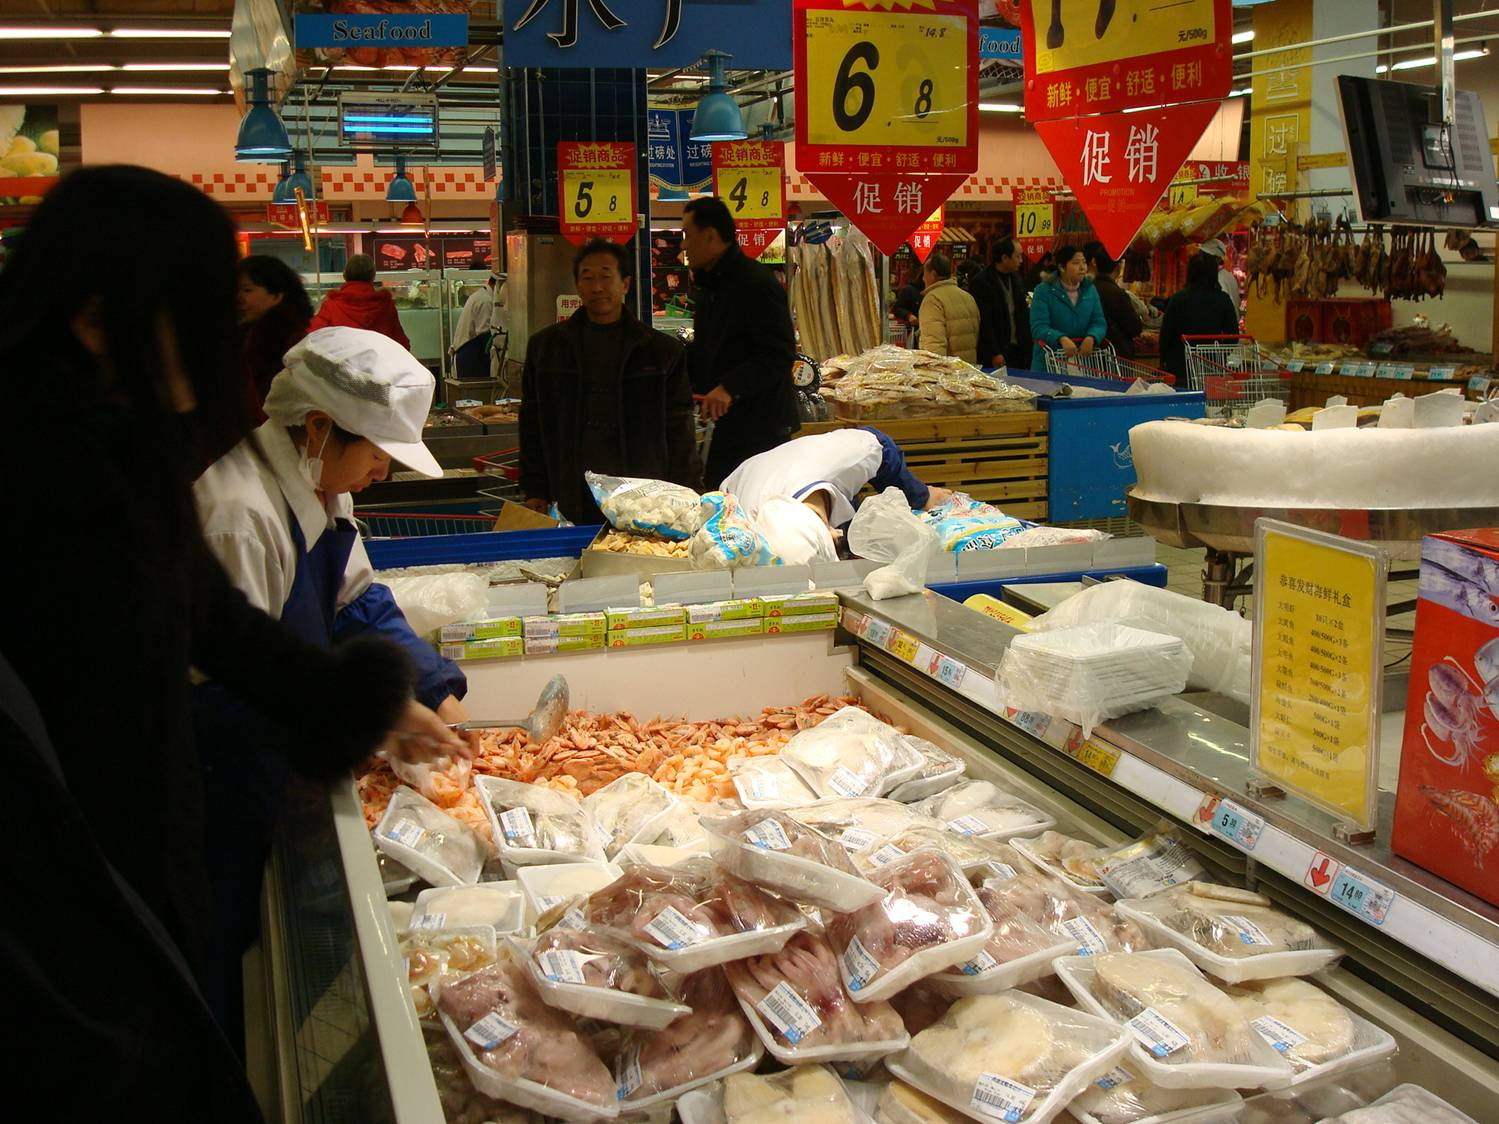 frozen fish section  in a Chinese supermarket